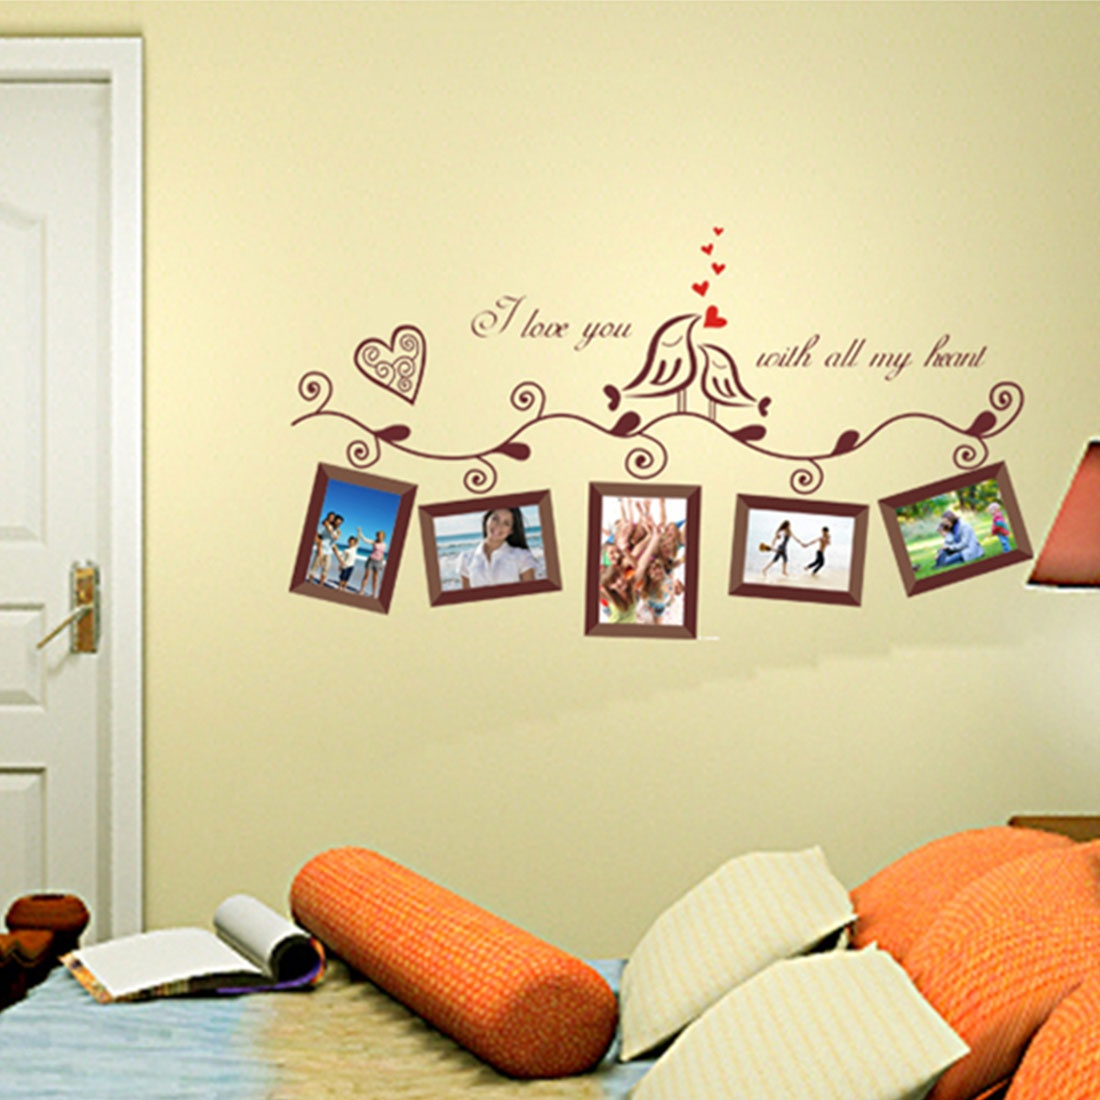 Family Tree Wall Decal Homeware: Buy Online from Fishpond.co.nz